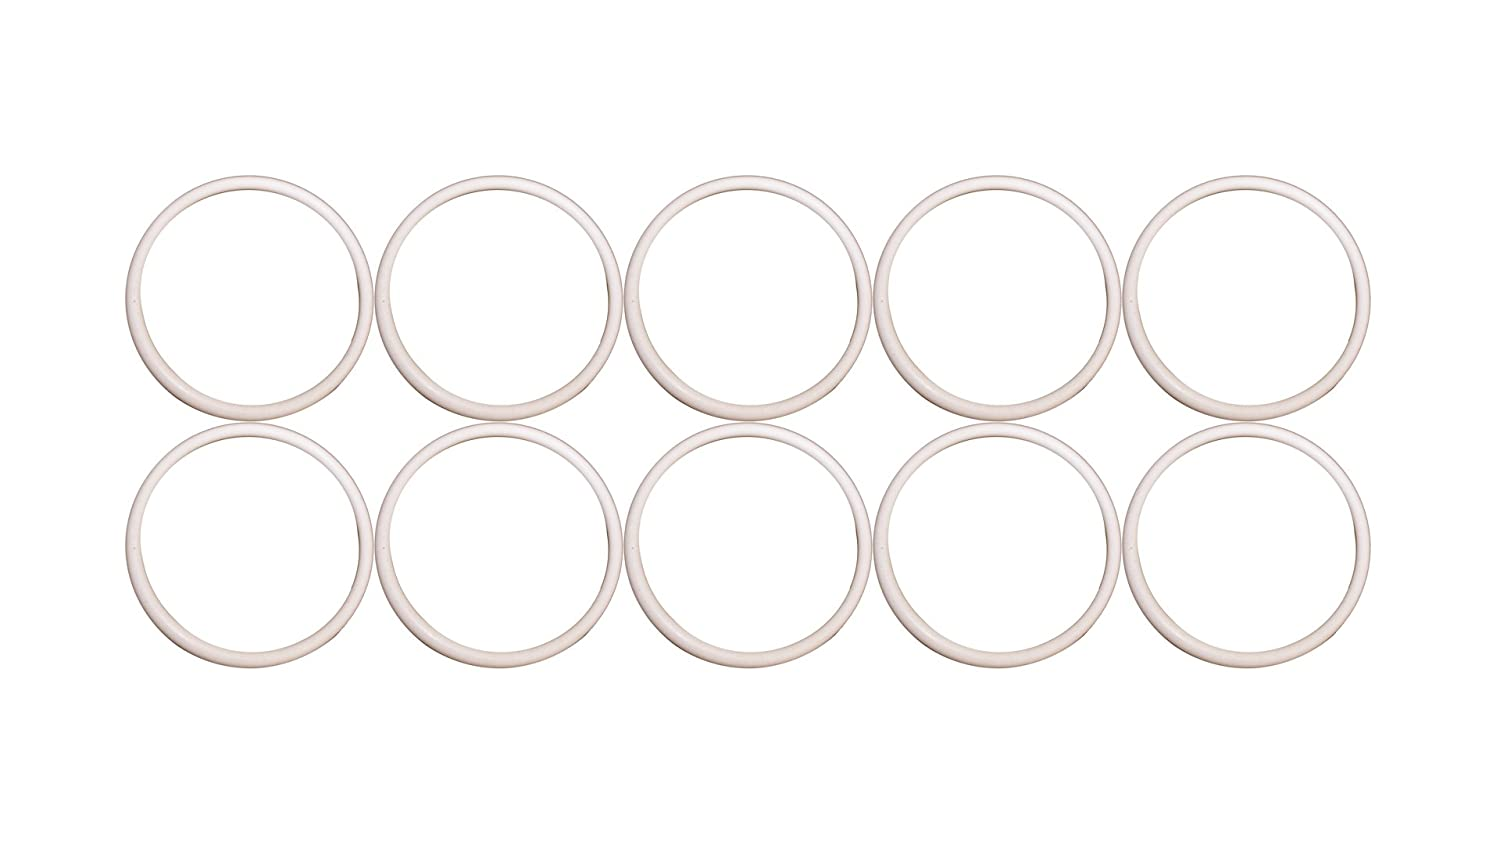 Sterling Seal ORTFE236x10 Number-236 Standard Teflon O-Ring Polytetrafluoro-Ethylene Sur-Seal 3-1//4 ID Pack of 10 3-1//4 ID 3-1//2 OD Outstanding Weather Resistance 3-1//2 OD Pack of 10